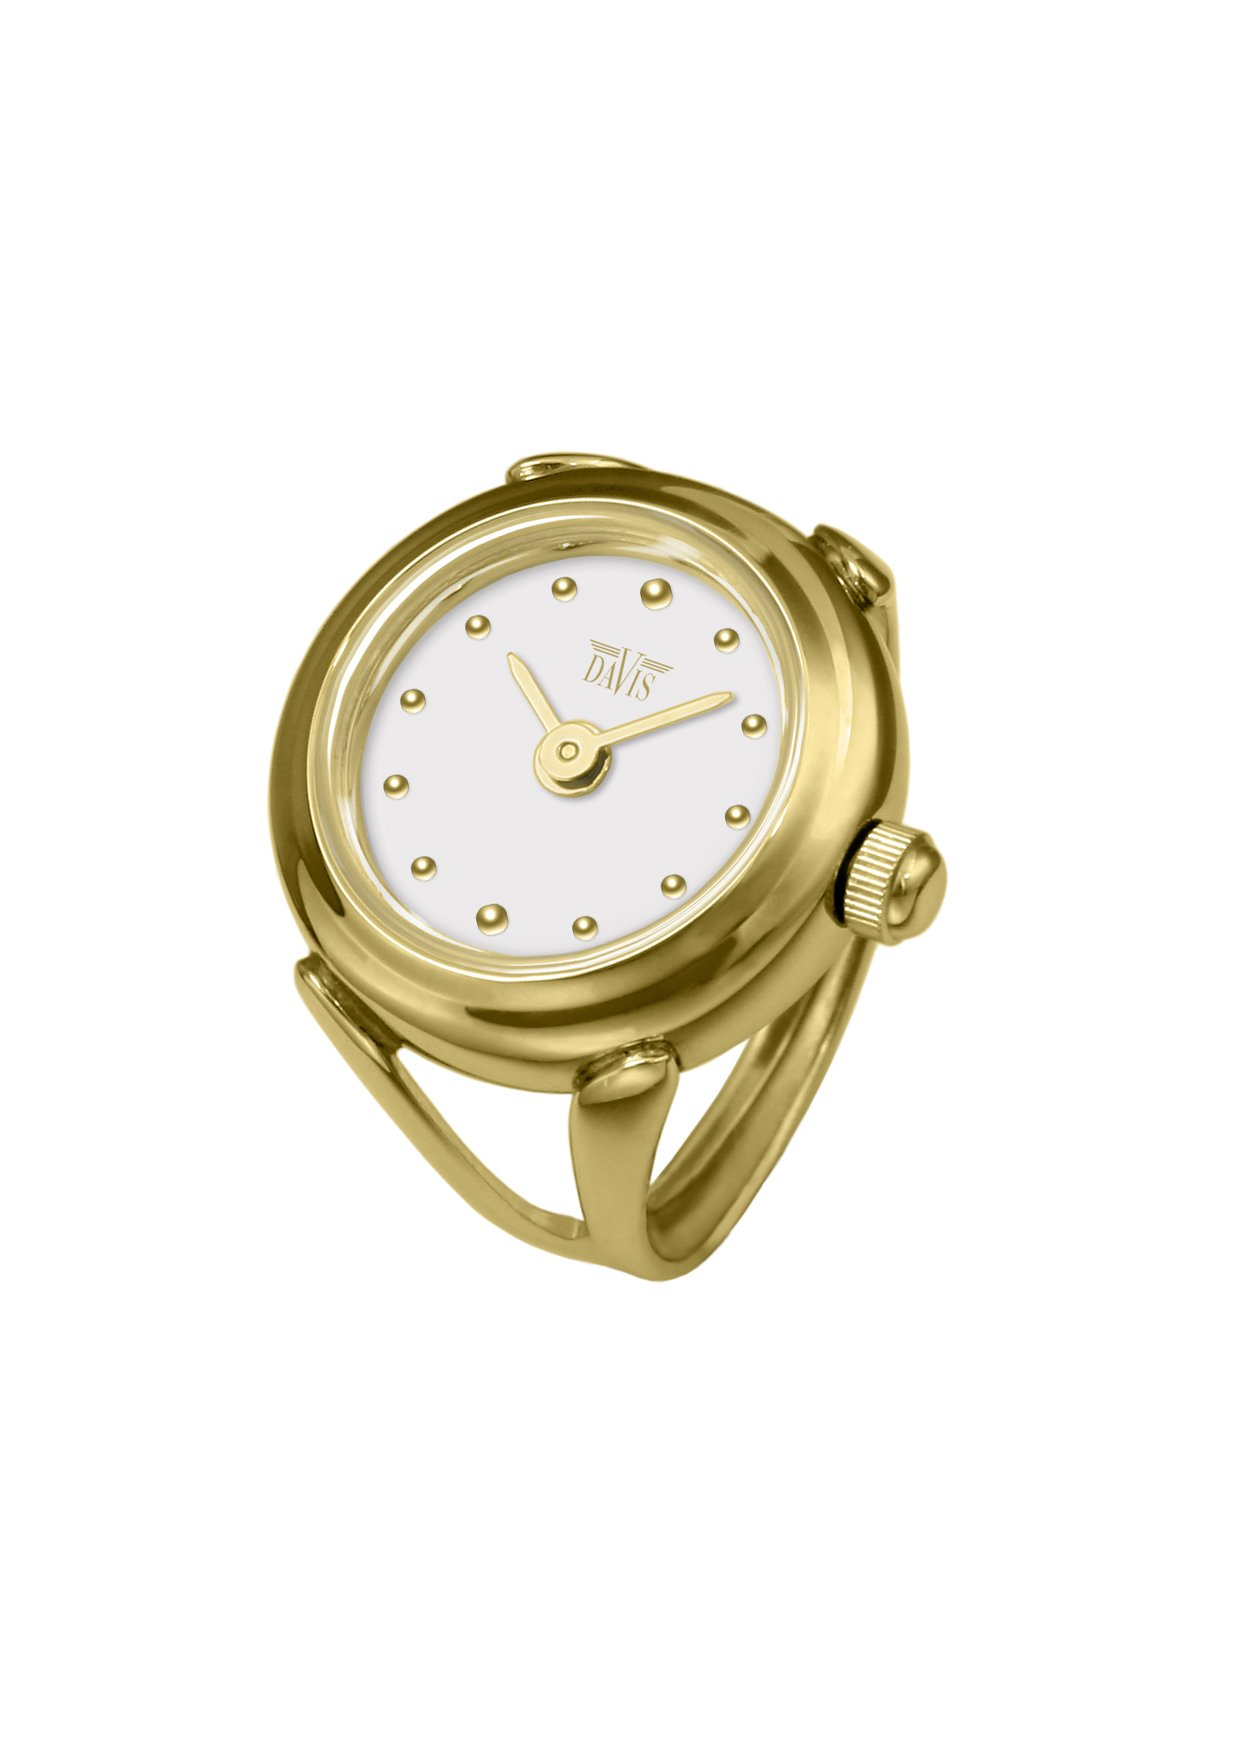 Davis - Womens Finger Ring Watch Sapphire Glass Adjustable (Gold / White Dial) by Davis